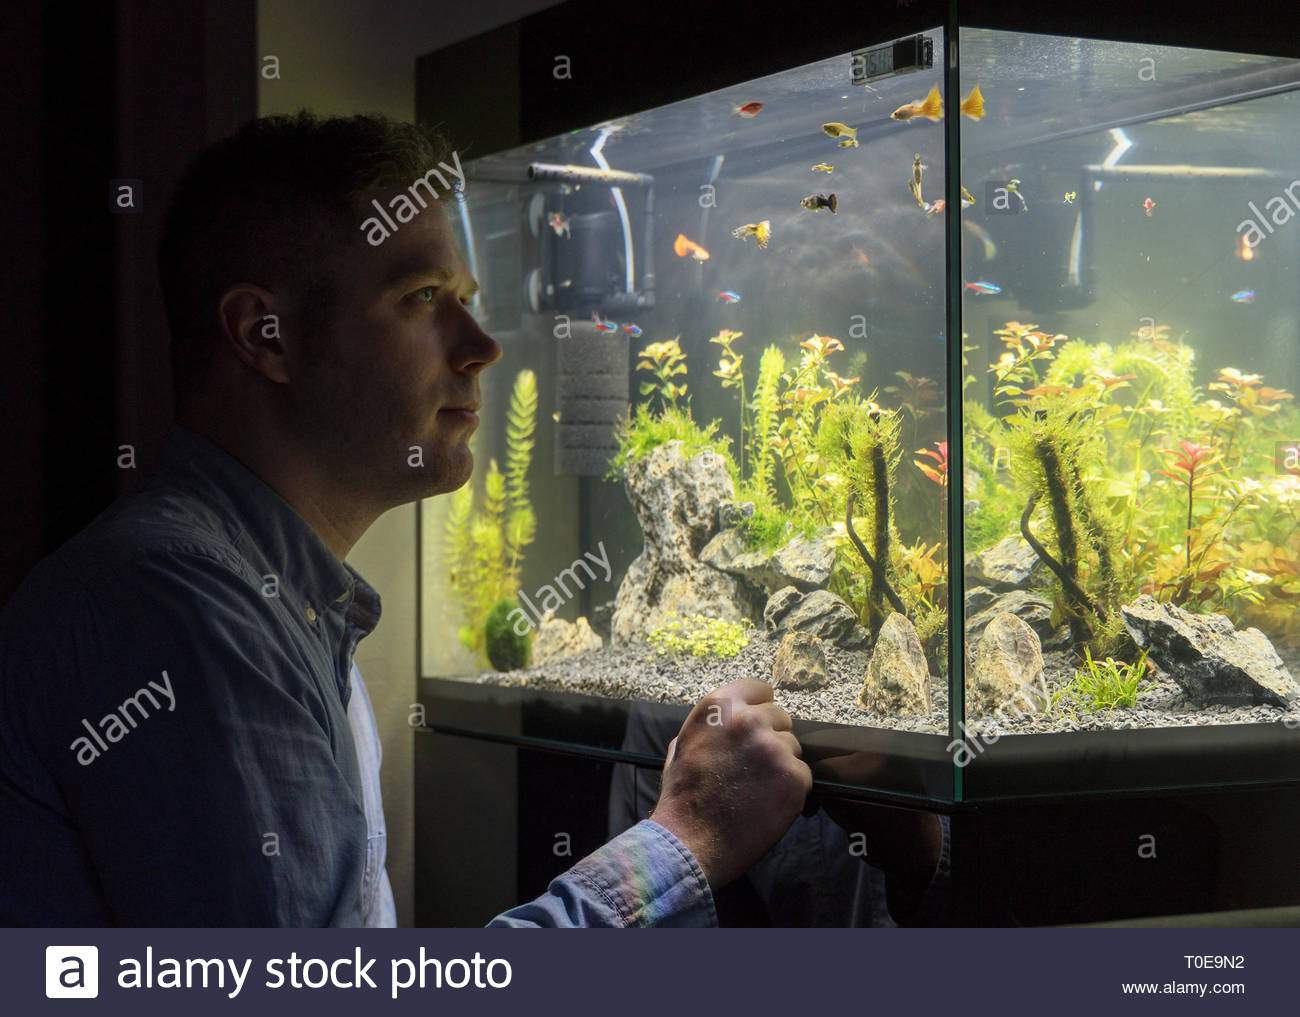 handsome man looks at the fish in the aquarium at home T0E9N2